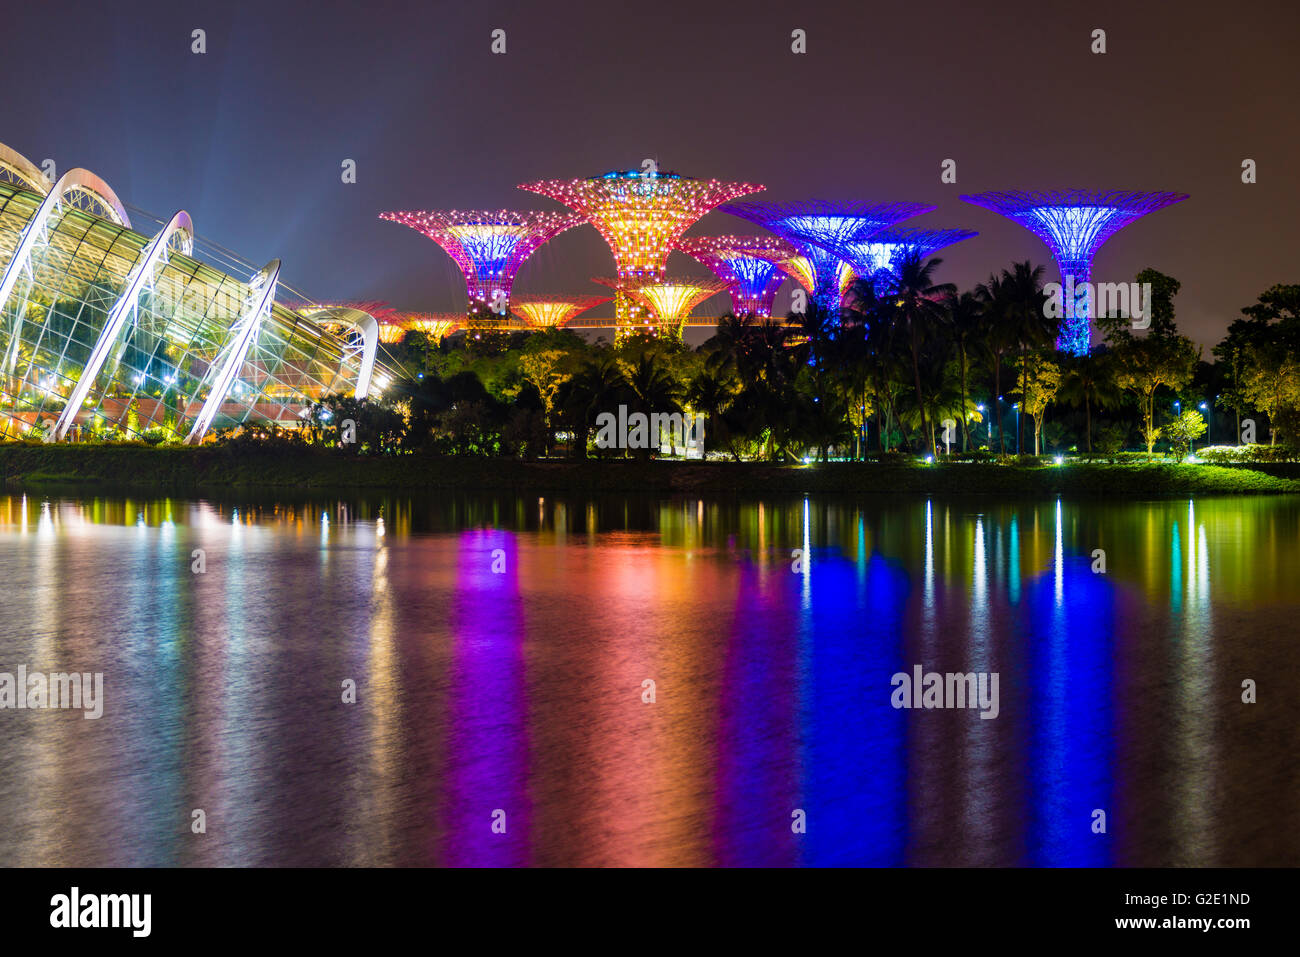 Water Reflection at night, Super Trees, Flower Dome, Gardens by the Bay, Marina Bay, Downtown Core, Singapore - Stock Image